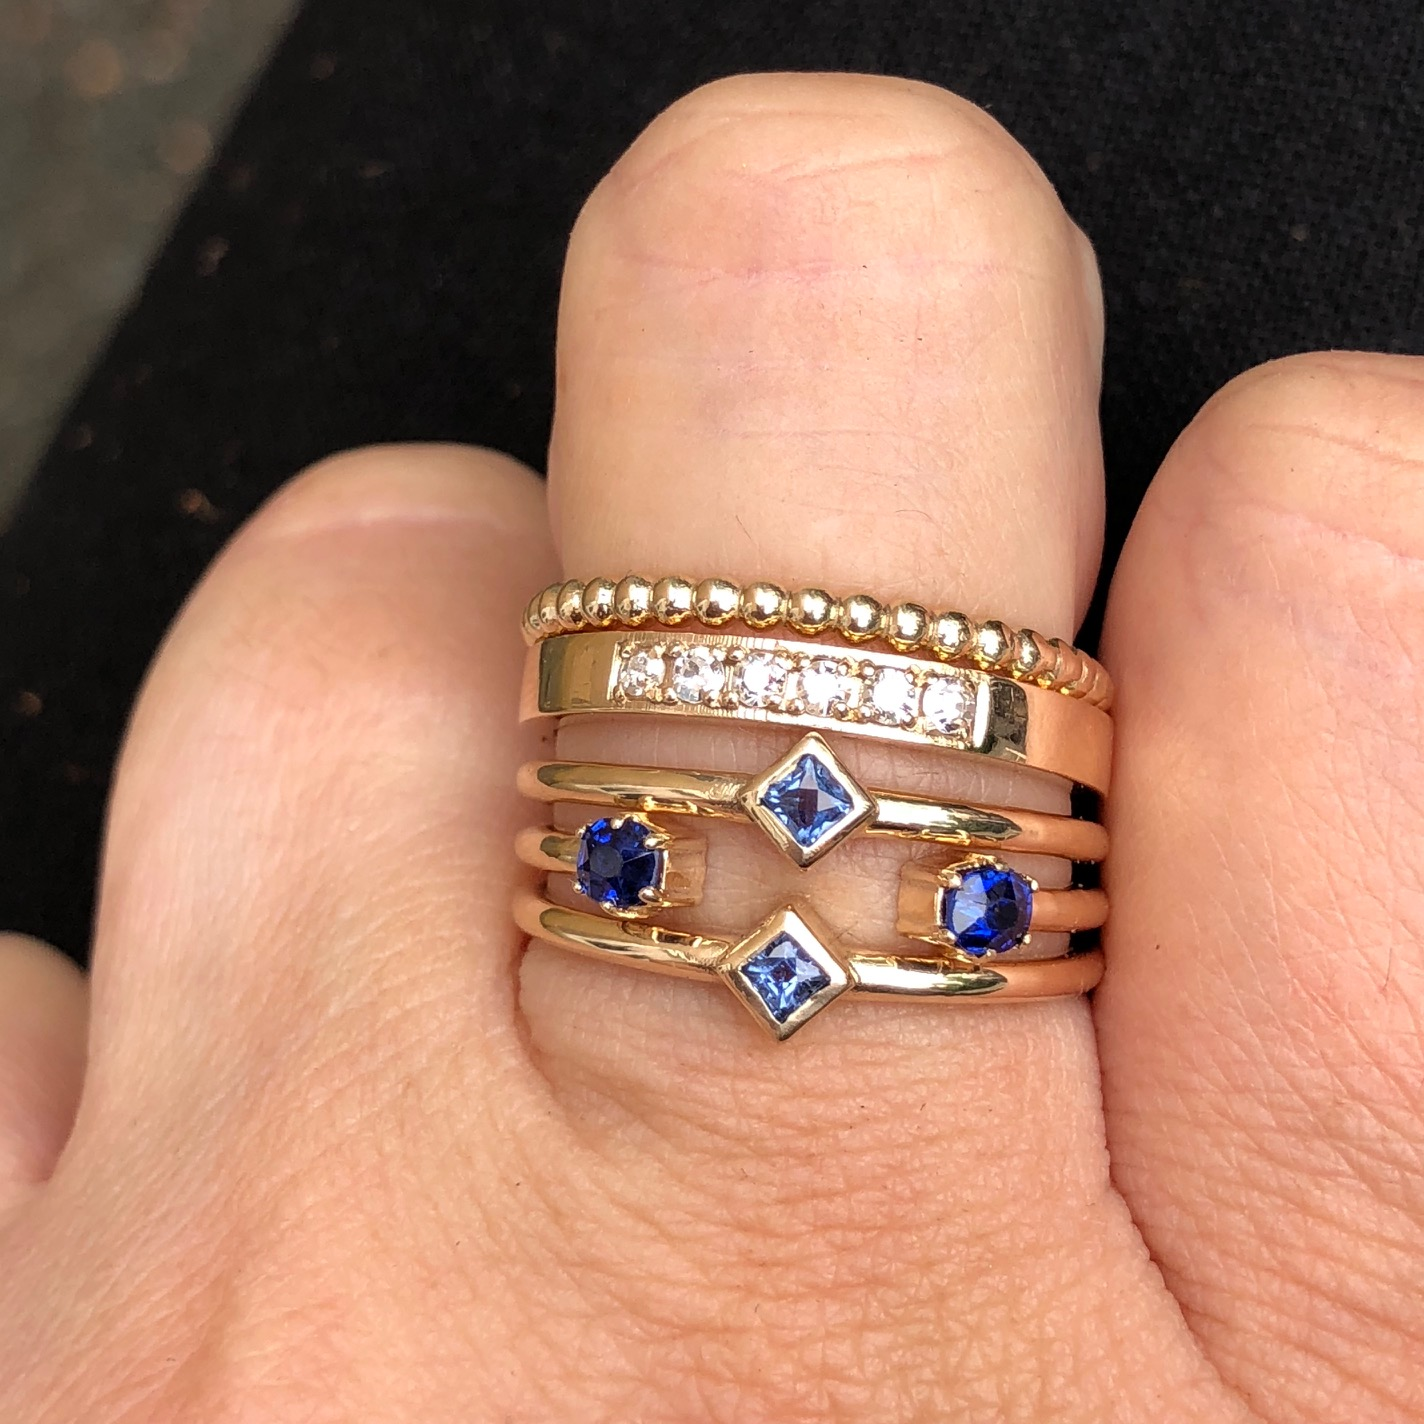 Delicate yellow gold stackable ring